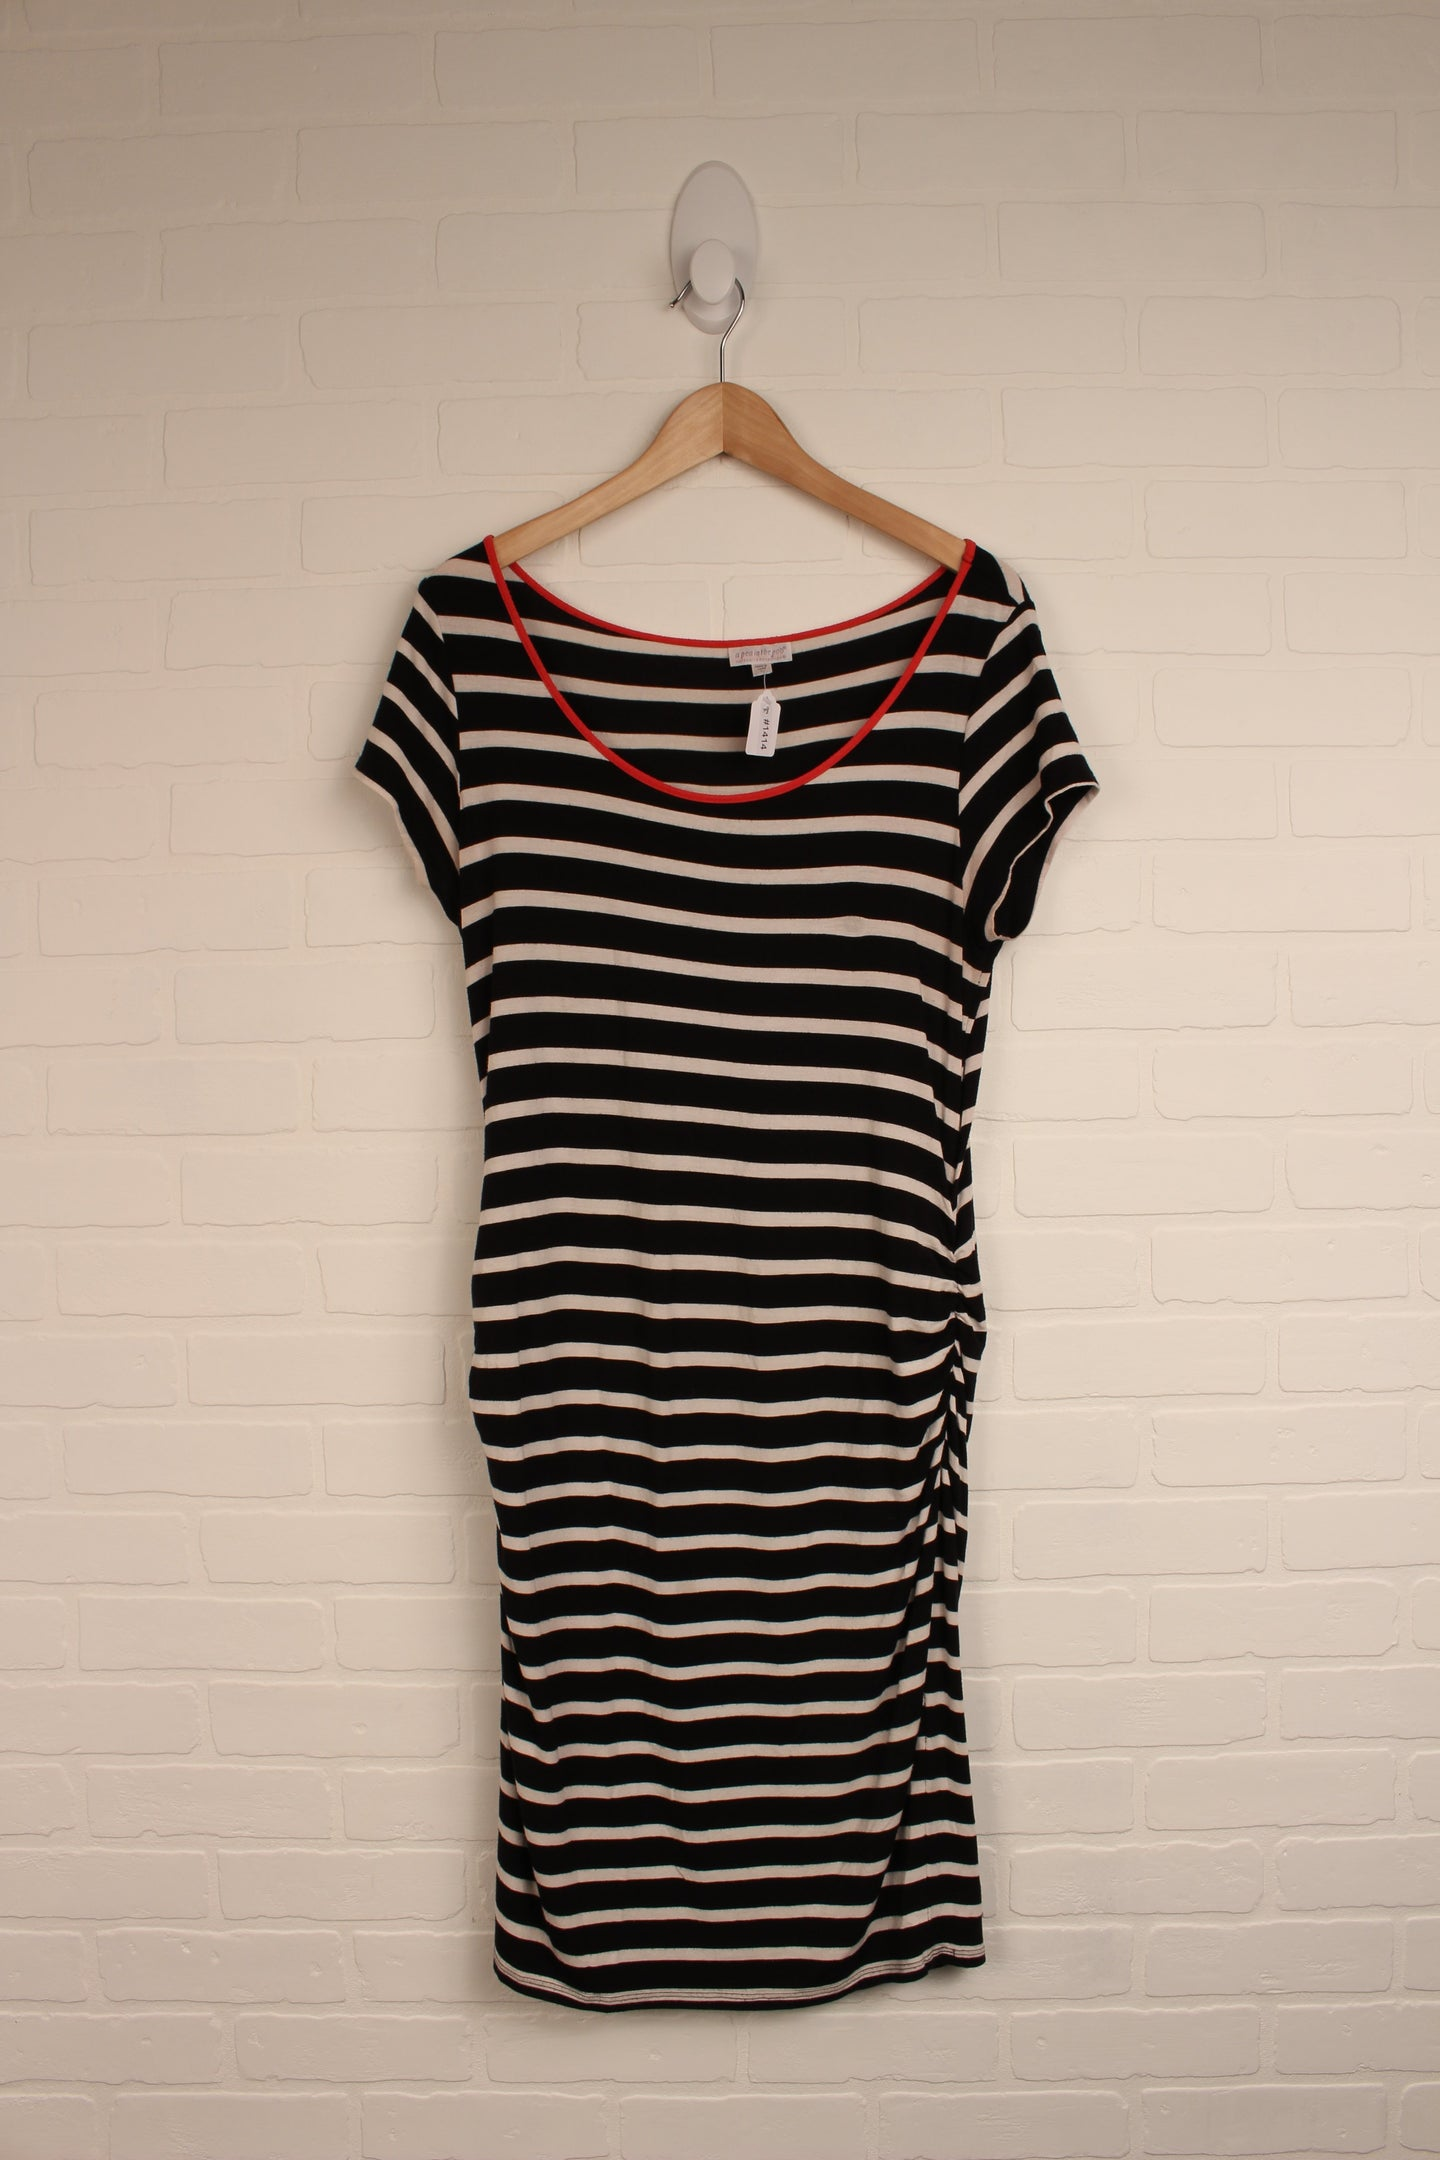 Black + White Striped Maternity Tunic (Maternity Size L)